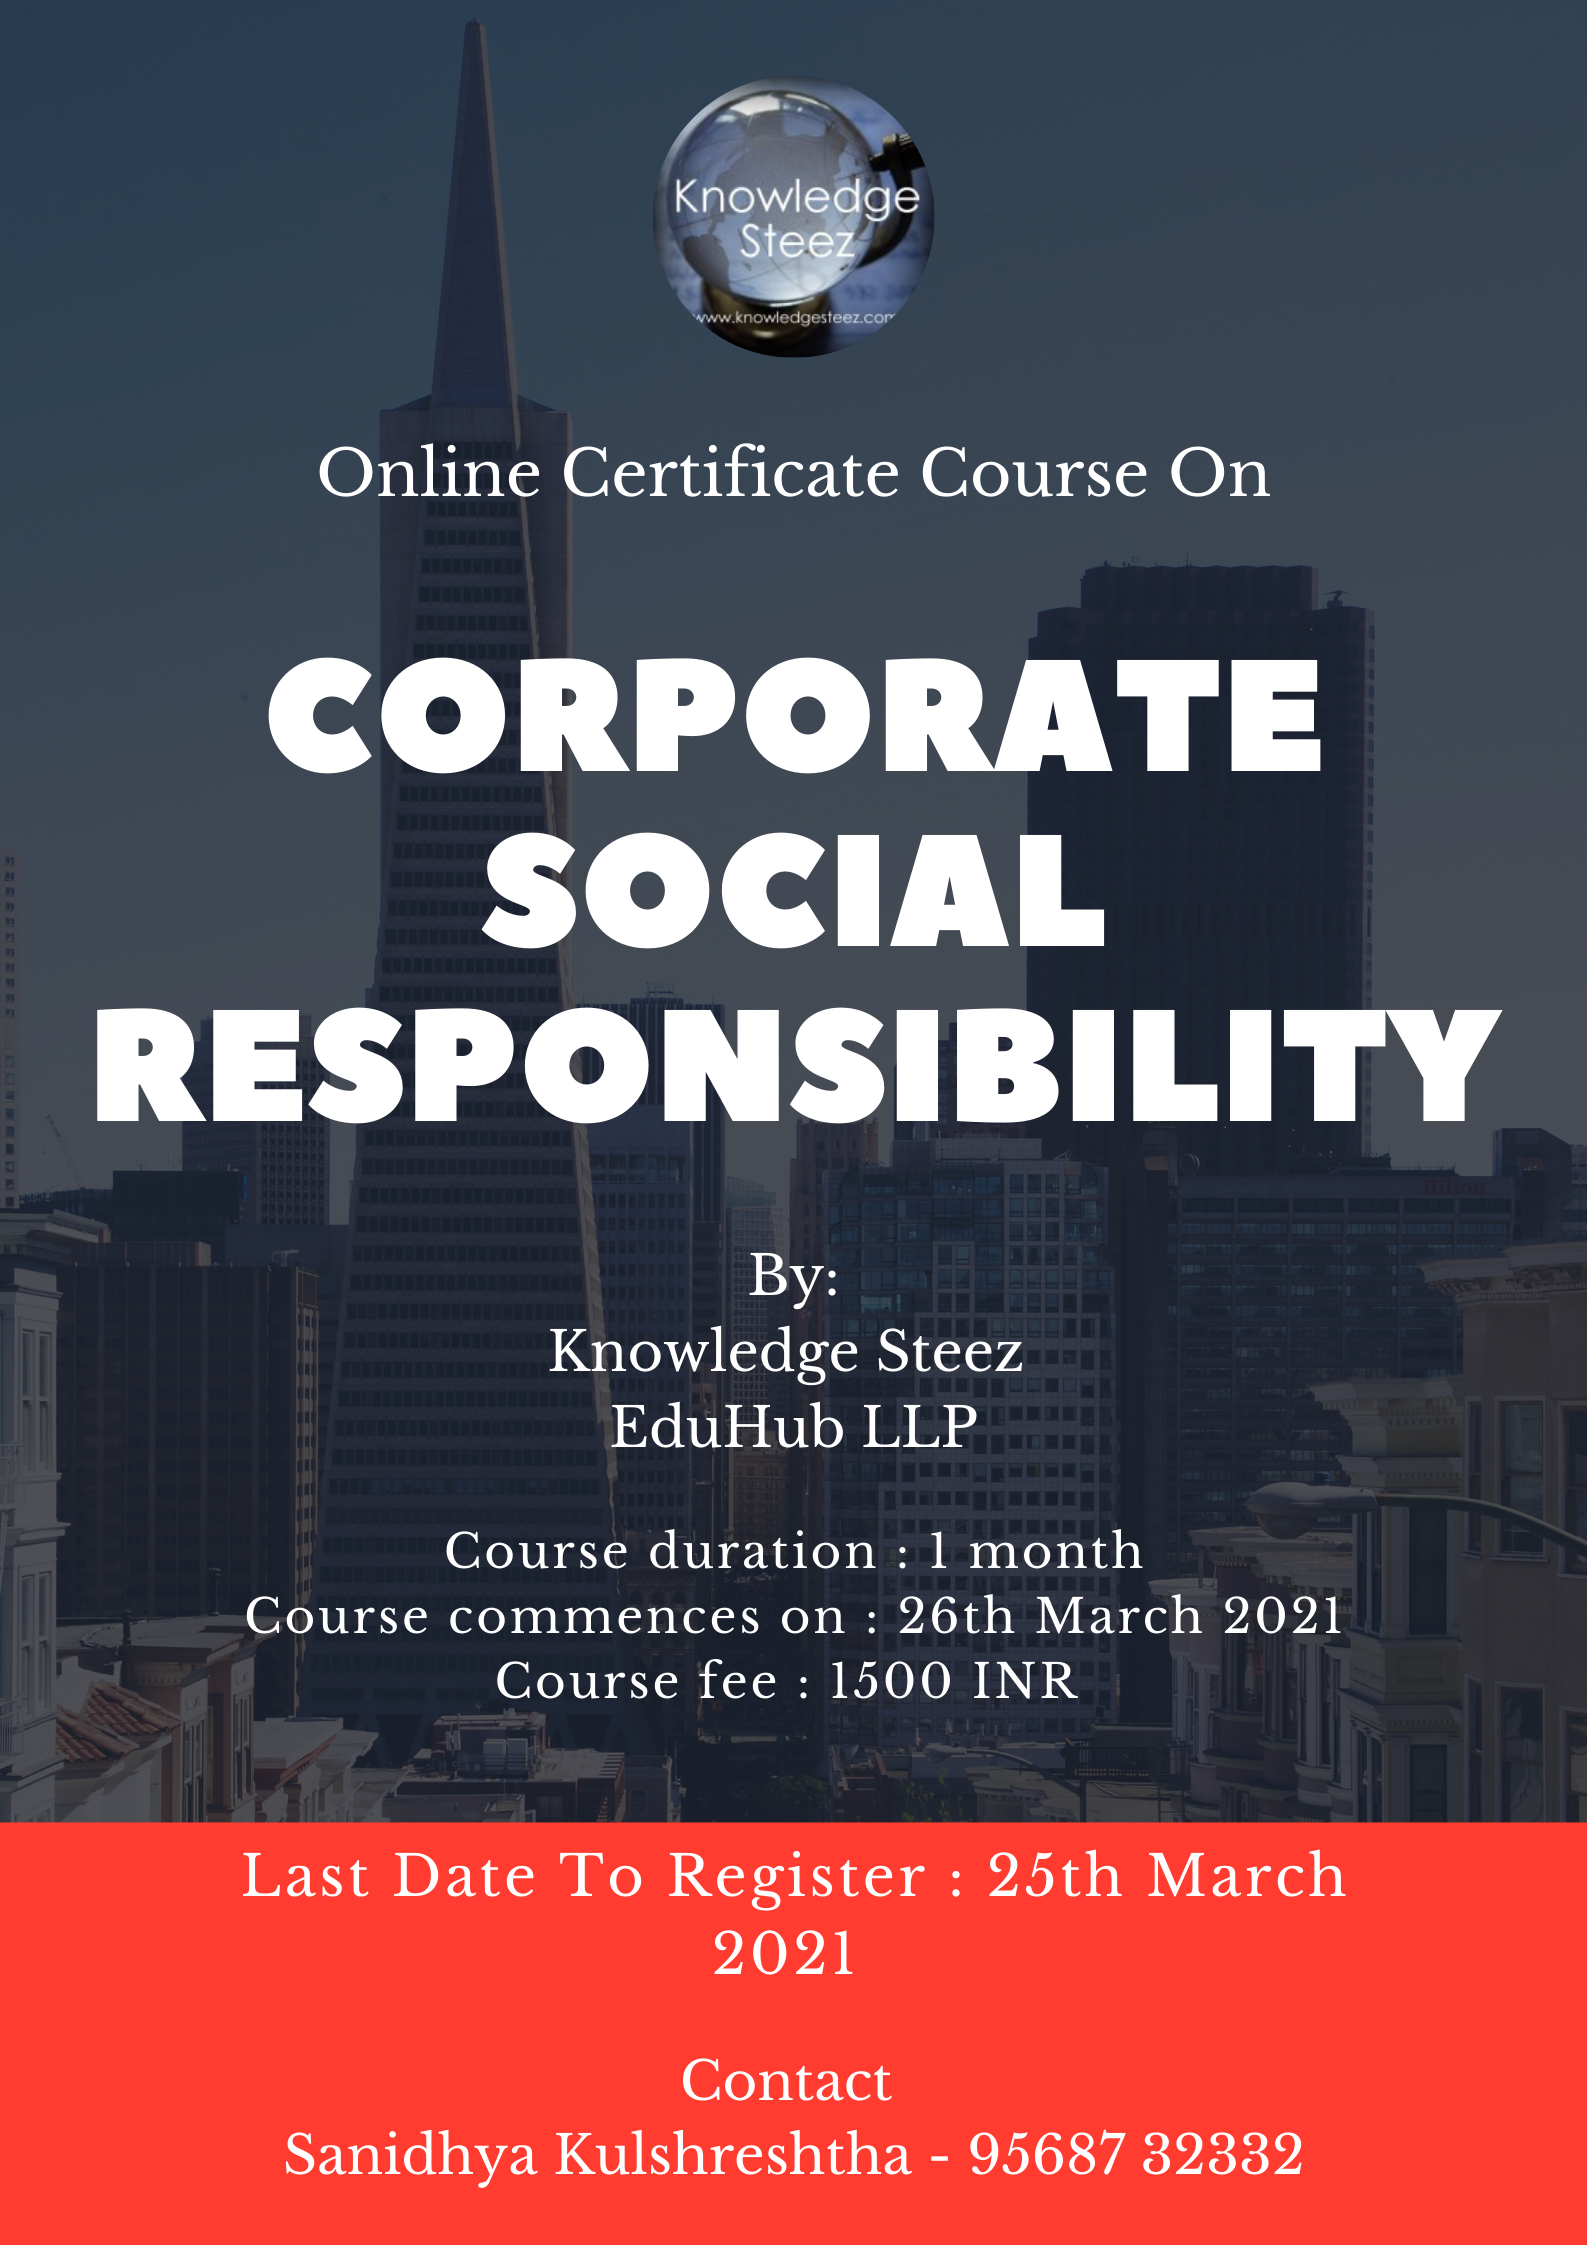 Online Certificate Course on Corporate Social Responsibility (Register by 25th March 2021)